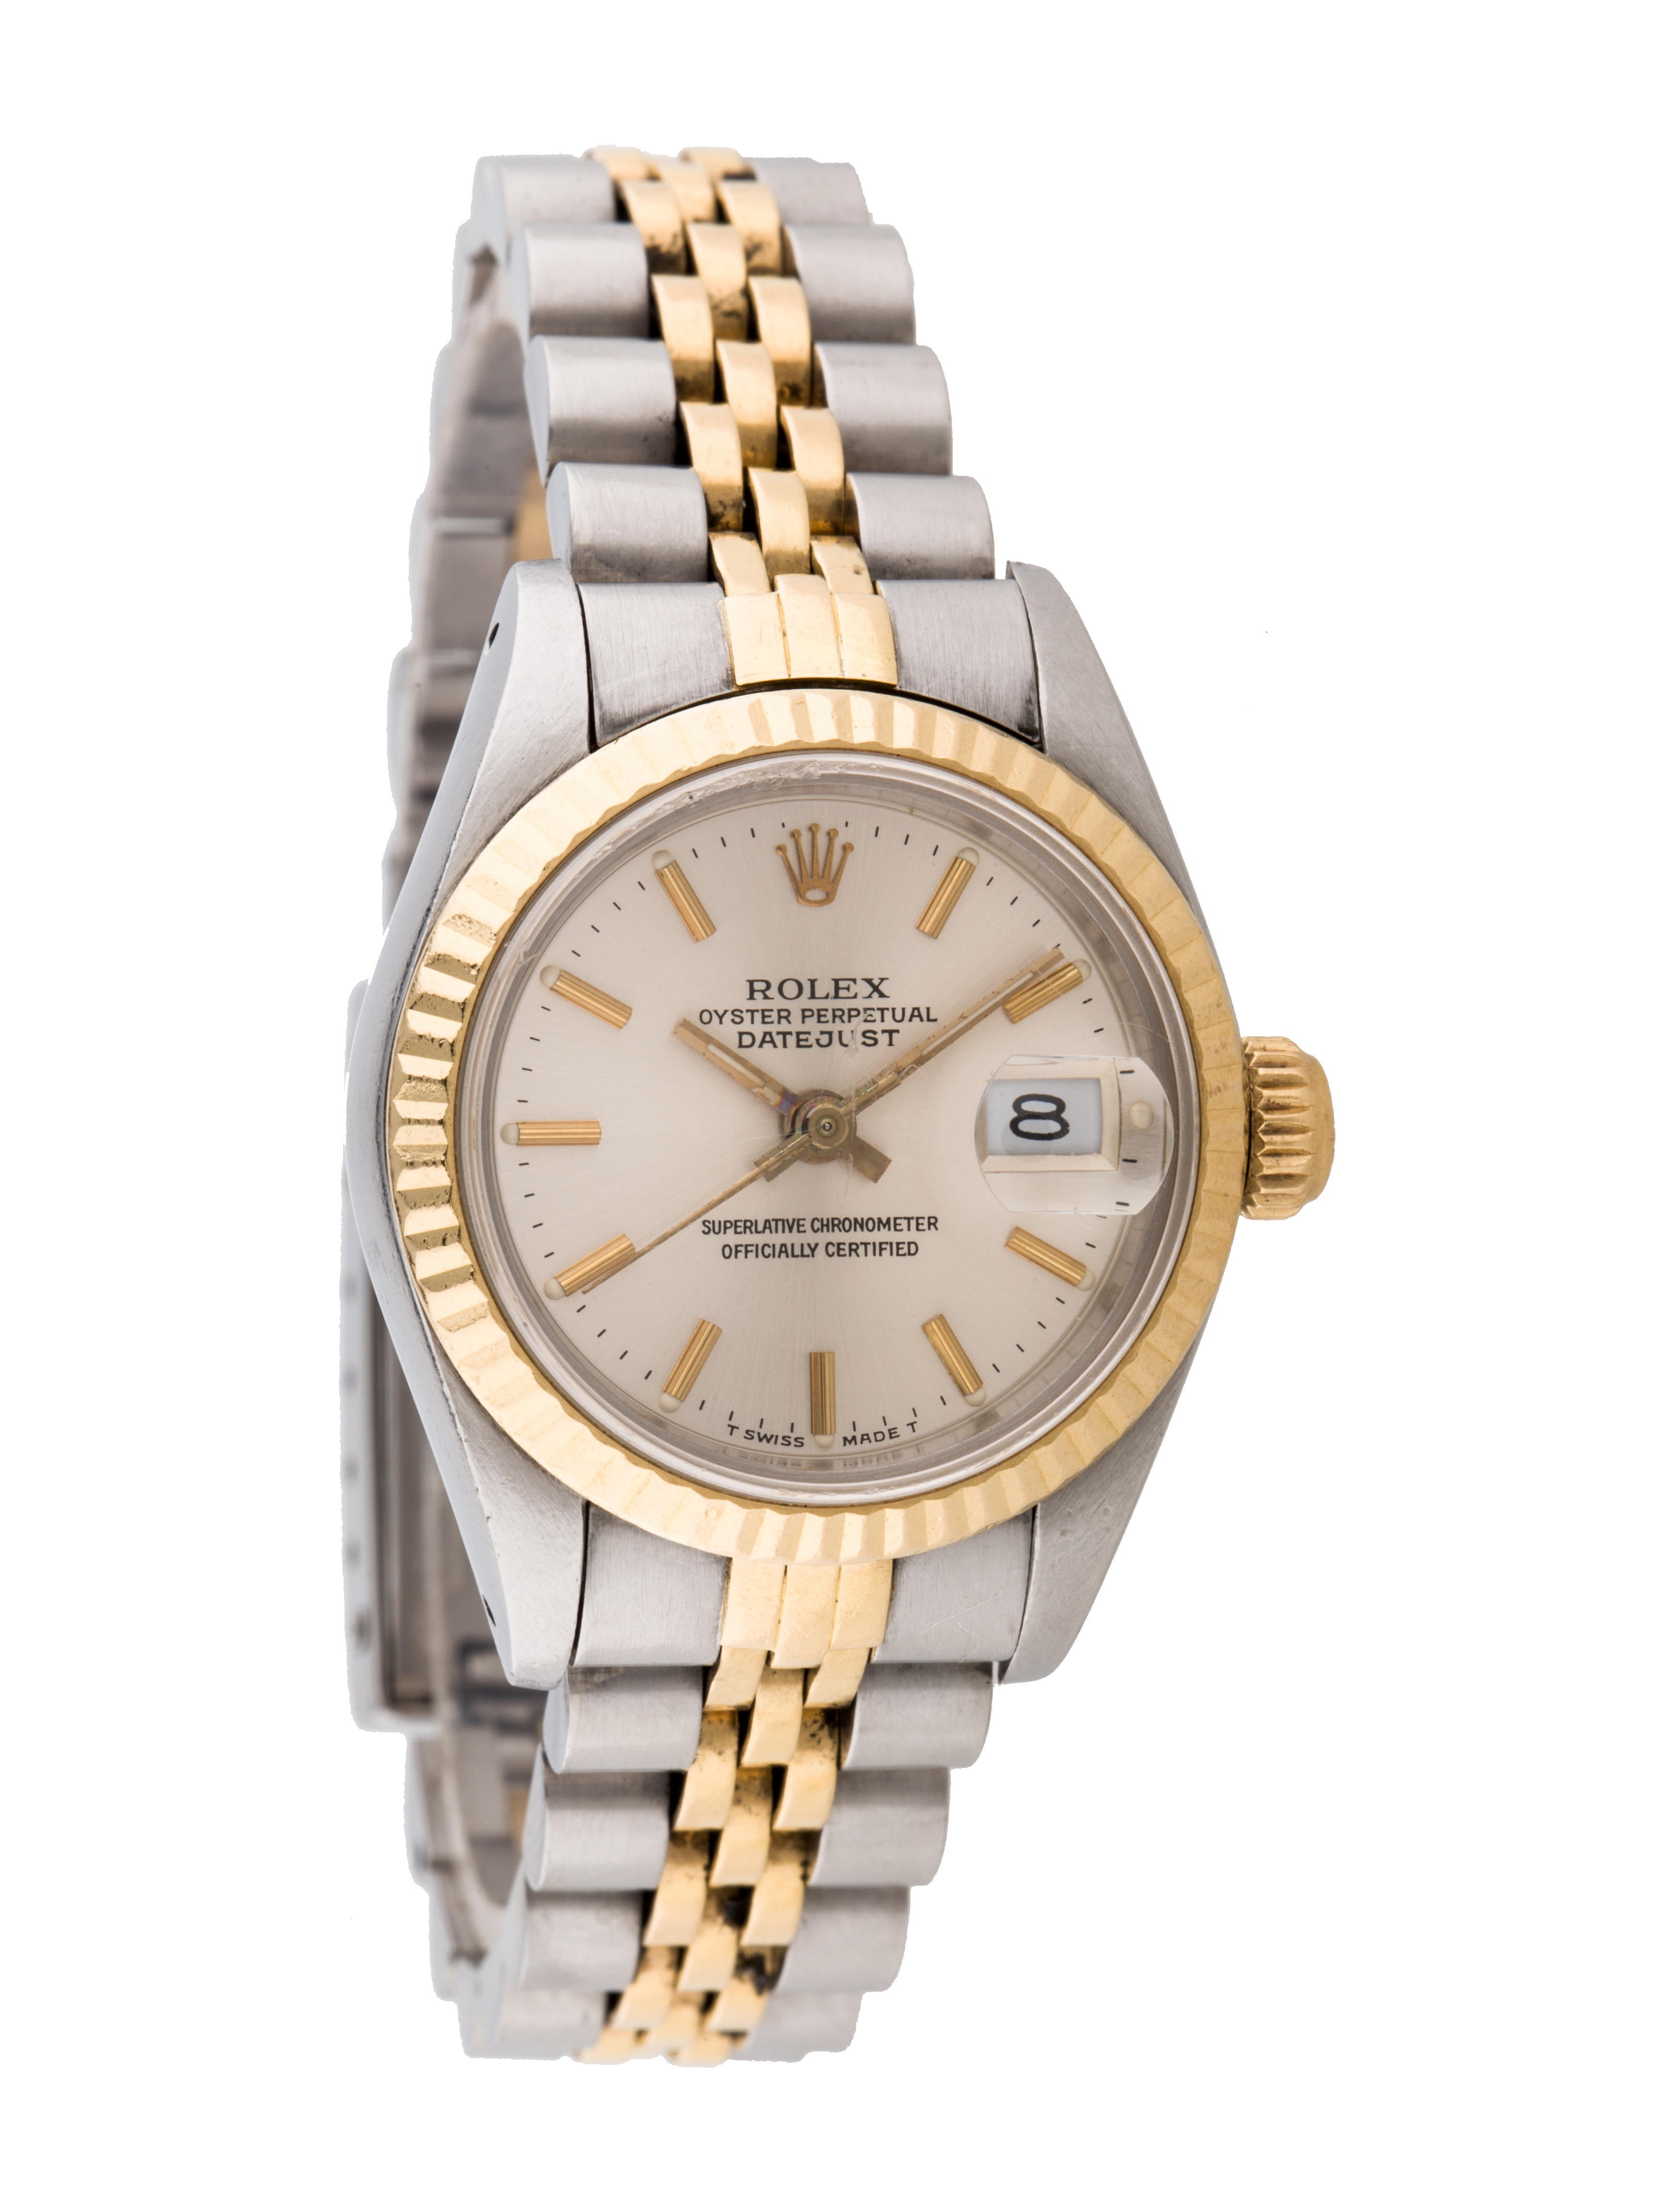 Rolex oyster perpetual lady datejust 69173 watch bracelet rlx20883 the realreal for Oyster watches